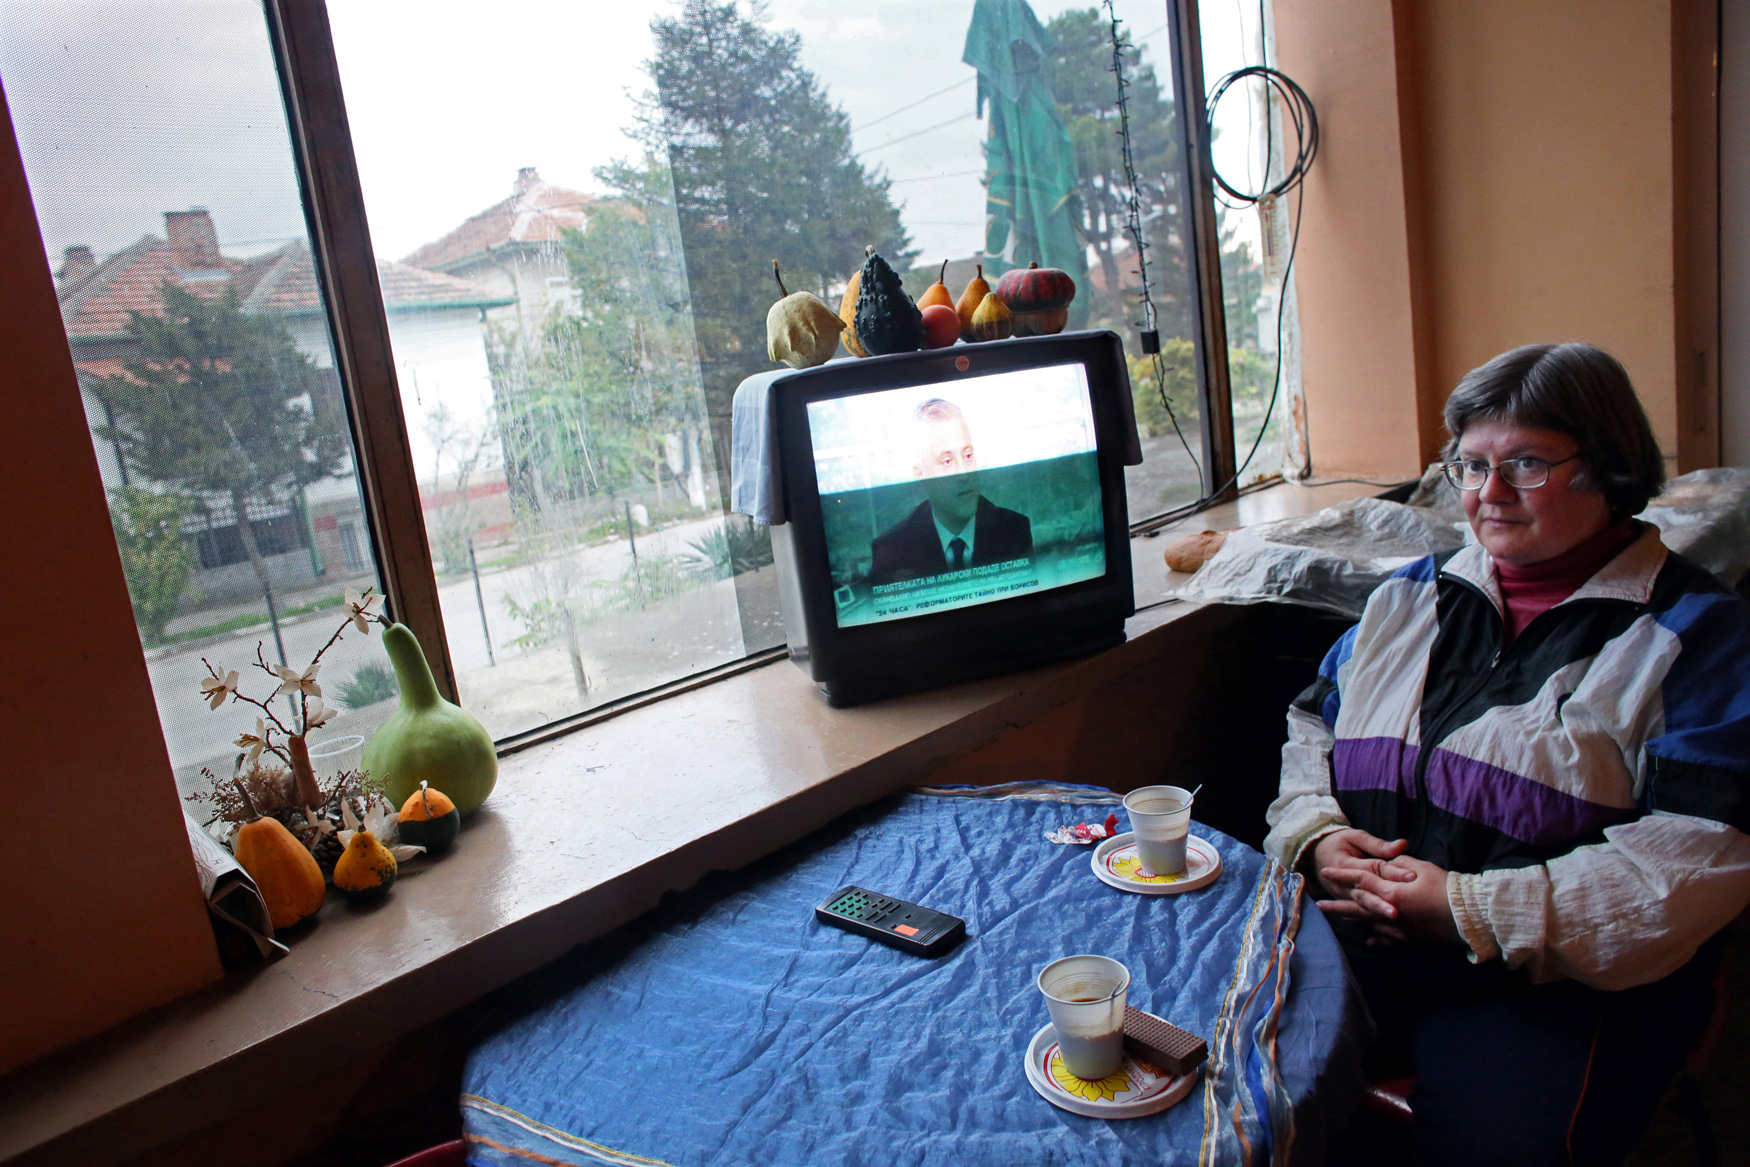 Veselka Vasileva gazes off into space as the TV drones on at a grocery store in Sinagovtsi, a village of rapidly declining population in Bulgaria, on October 22nd, 2014. Bulgaria has the most extreme population decline in the world — much of it due to post-1989 emigration, high death rates and low birth rates. There are so few people of child-bearing age in the nation that population statistics project a 30-percent decrease by 2060, from 7.2 million to just over 5 million. In other words, Bulgaria's population declines by 164 people a day, or 60,000 people a year — 60 percent of them aged over 65.